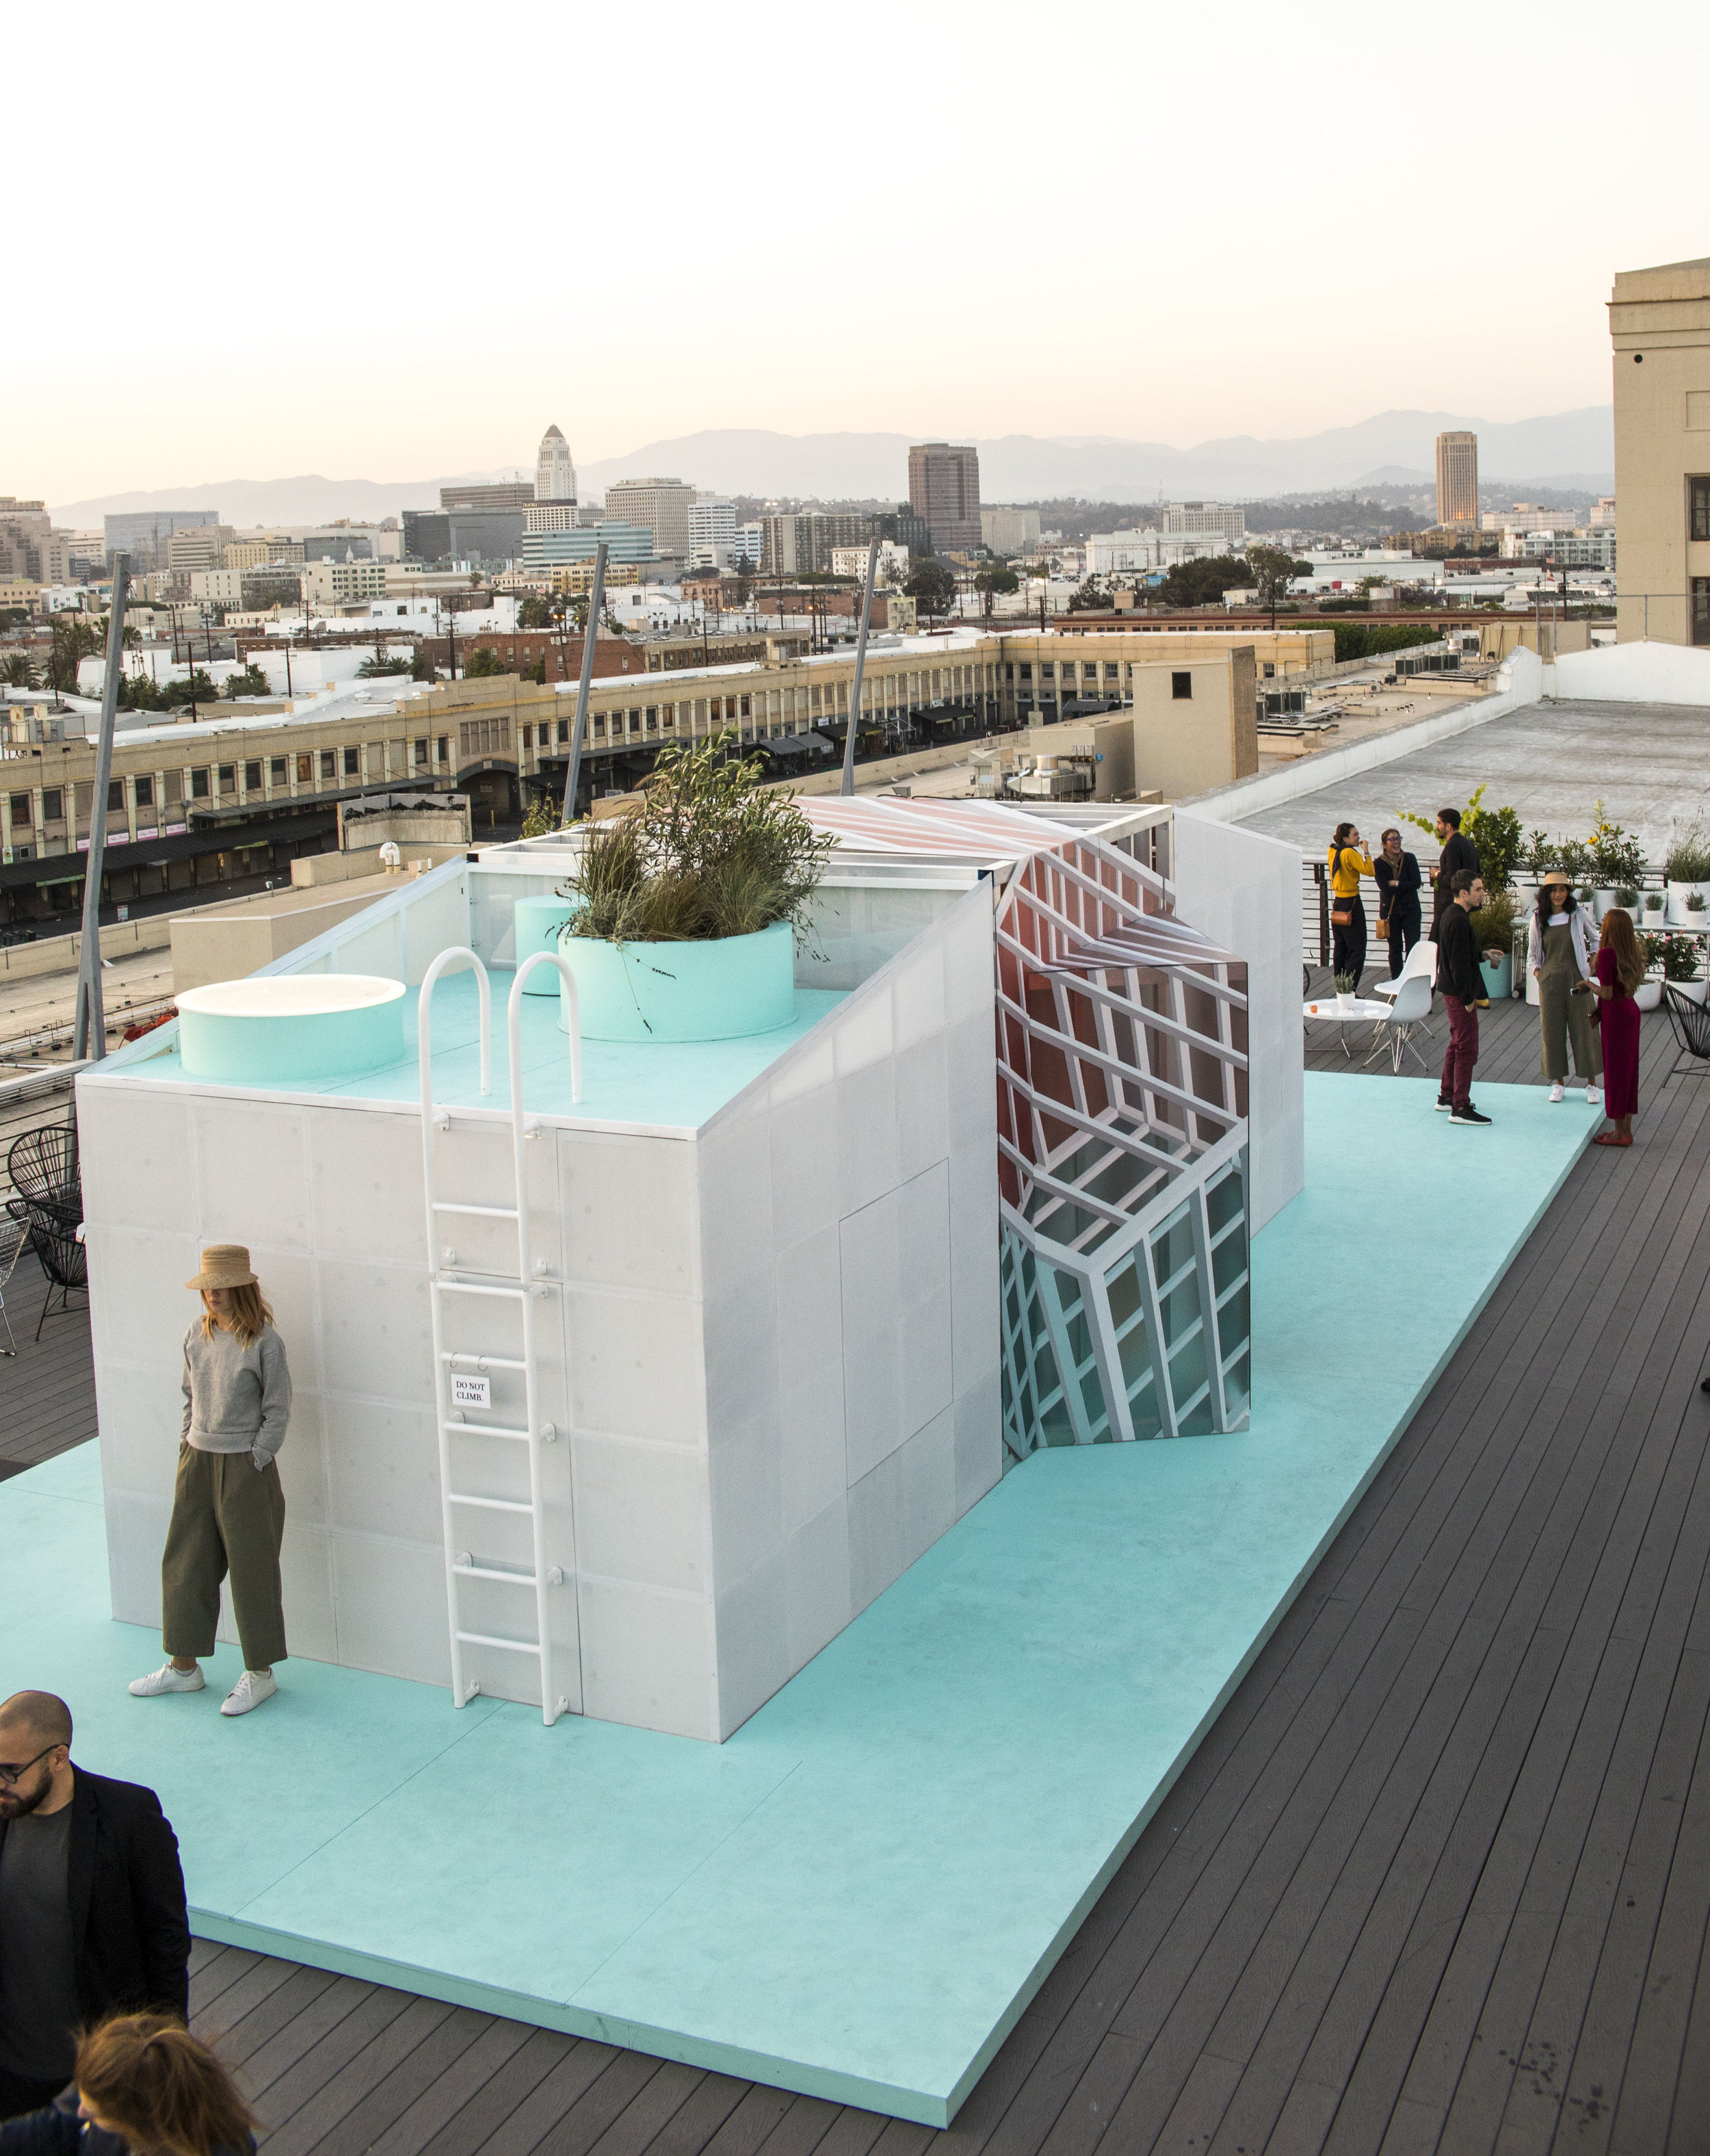 Urban Cabin by FreelandBuck for MINI Living at the Los Angeles Design Festival